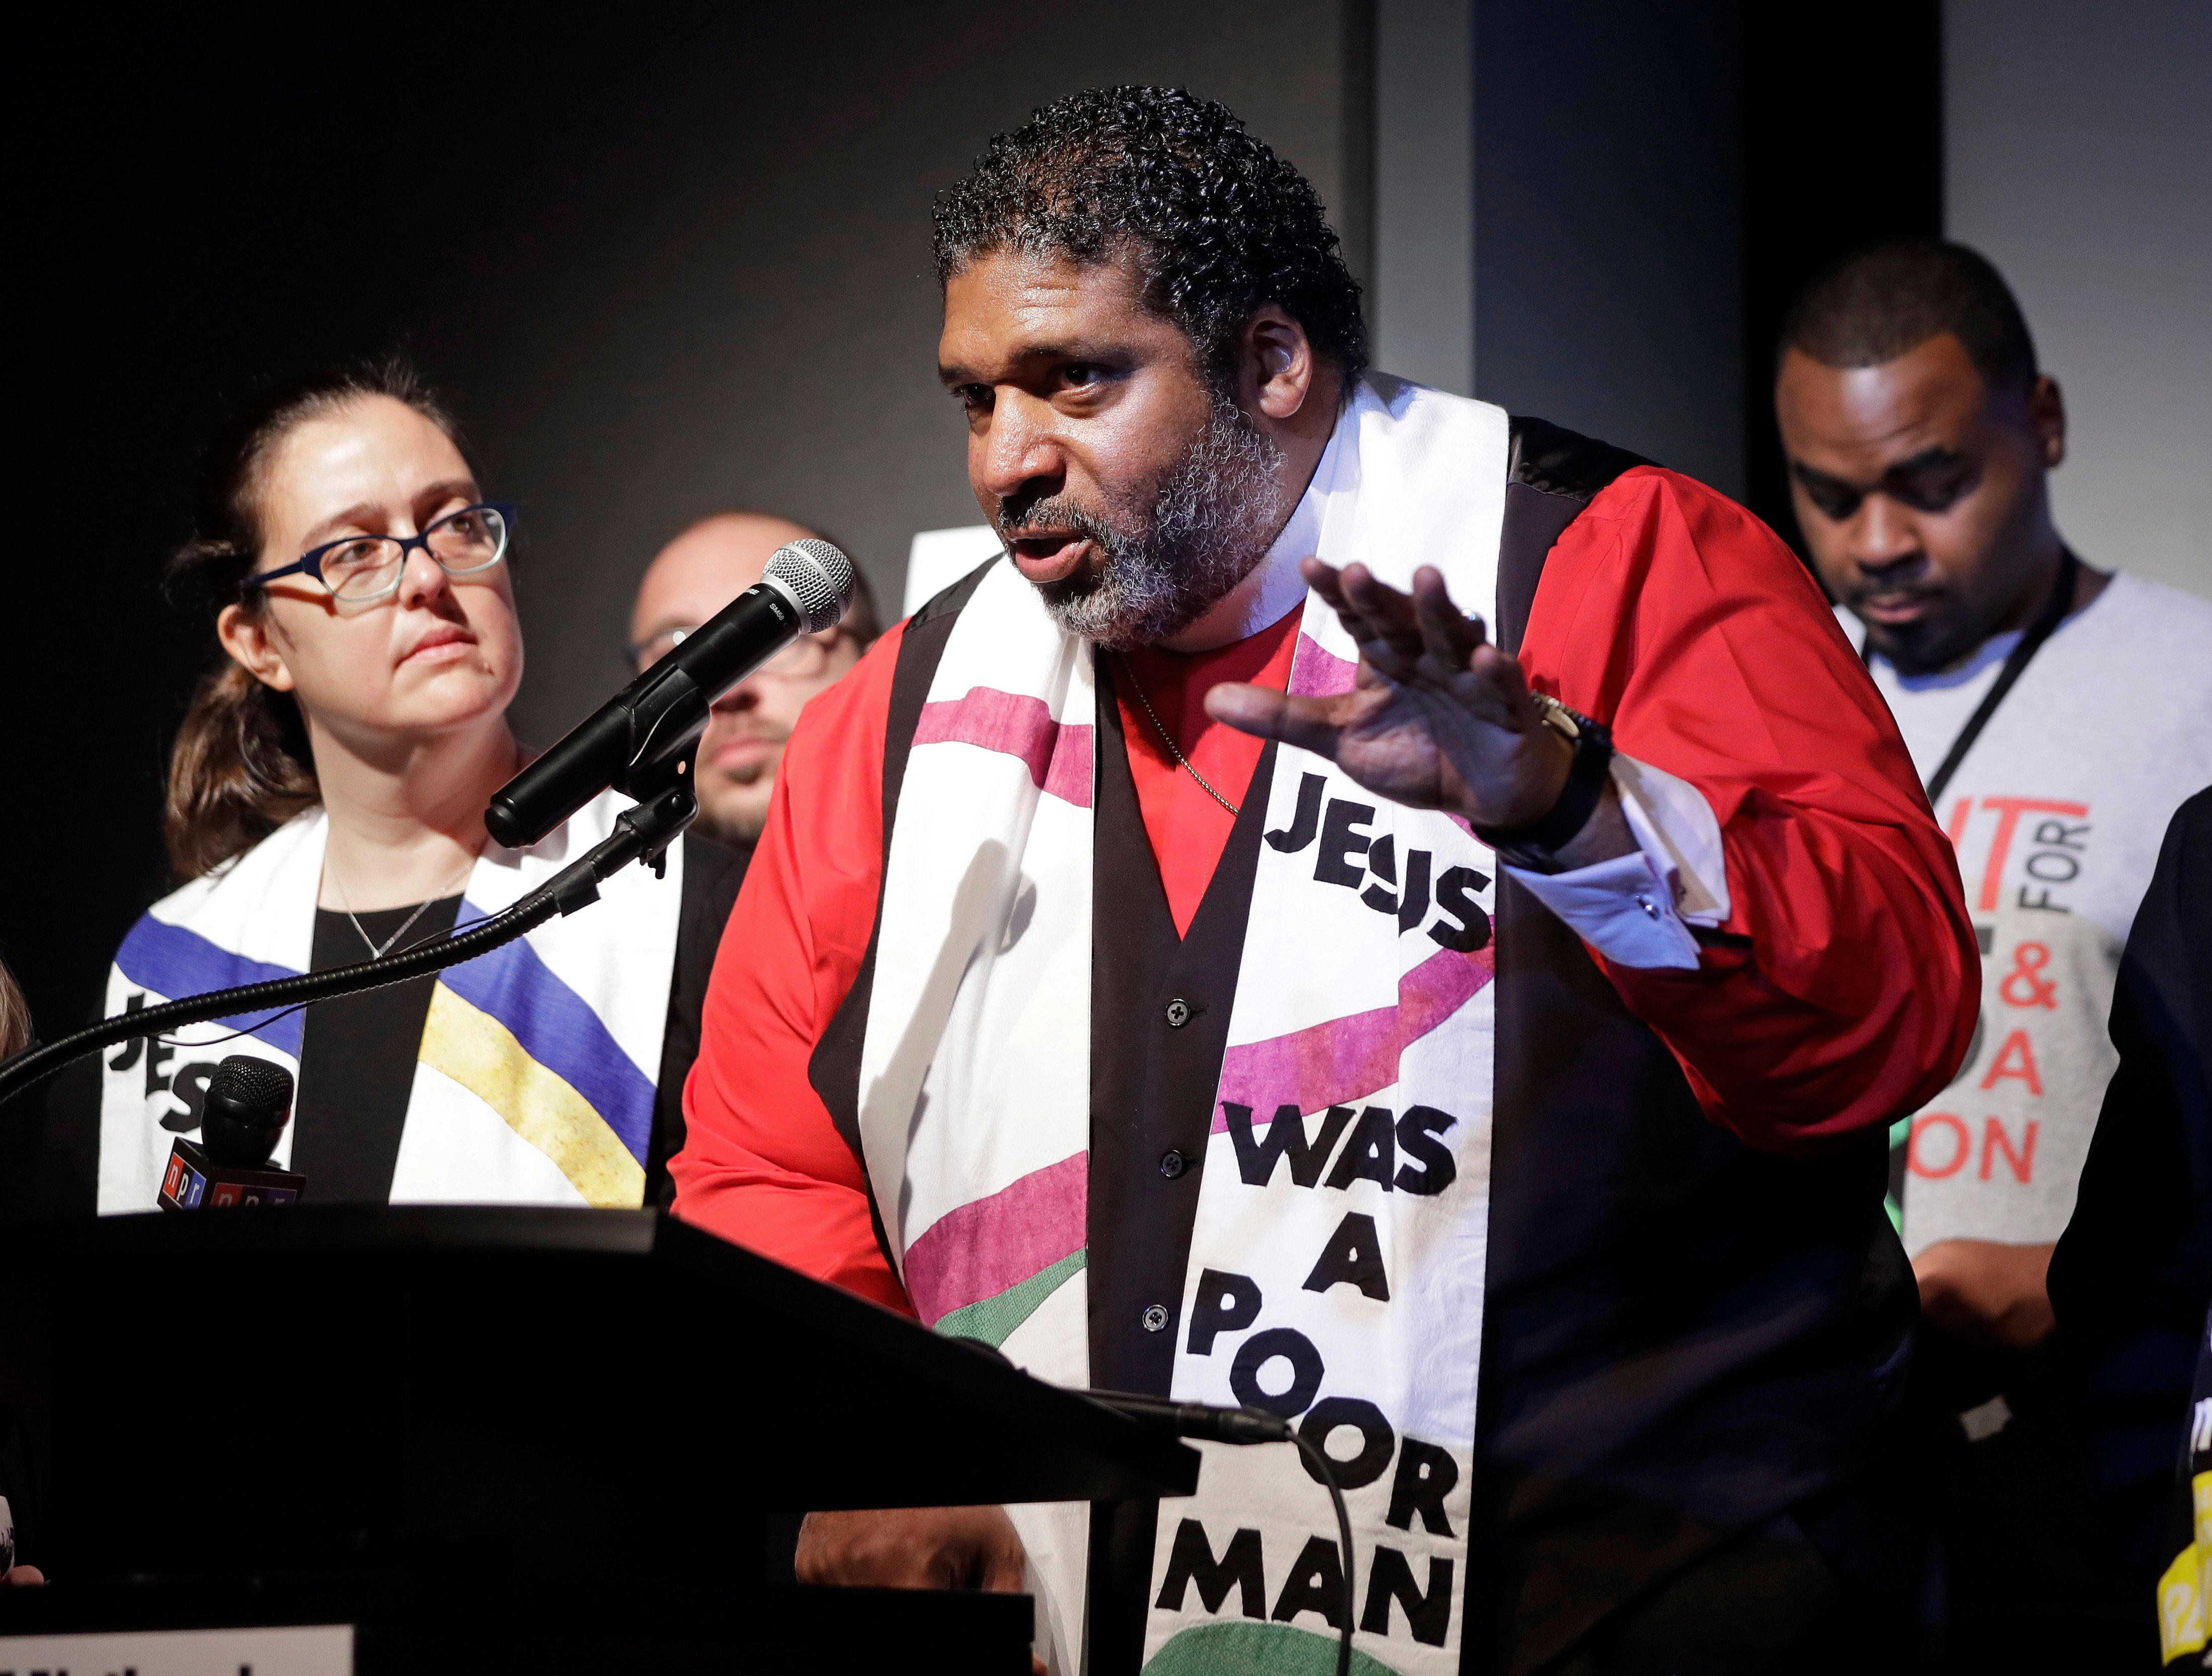 """The Rev. <a href=""""https://www.huffpost.com/topic/rev-william-barber"""" target=""""_blank"""">William J. Barber II</a>is a promi"""